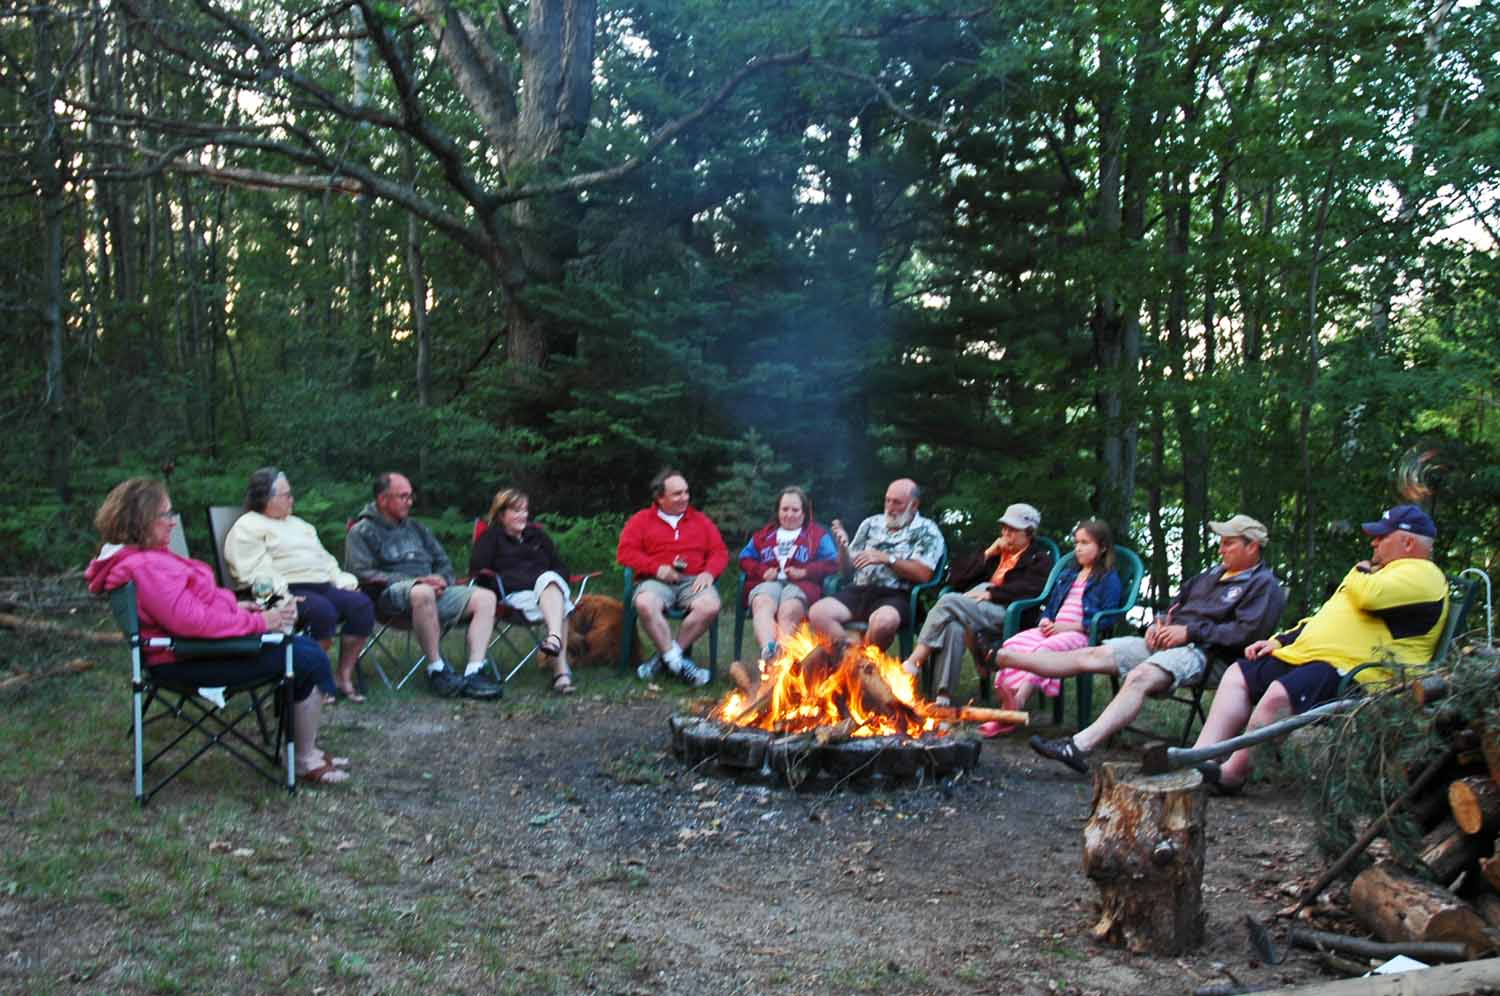 Sharing stories around the evening campfire